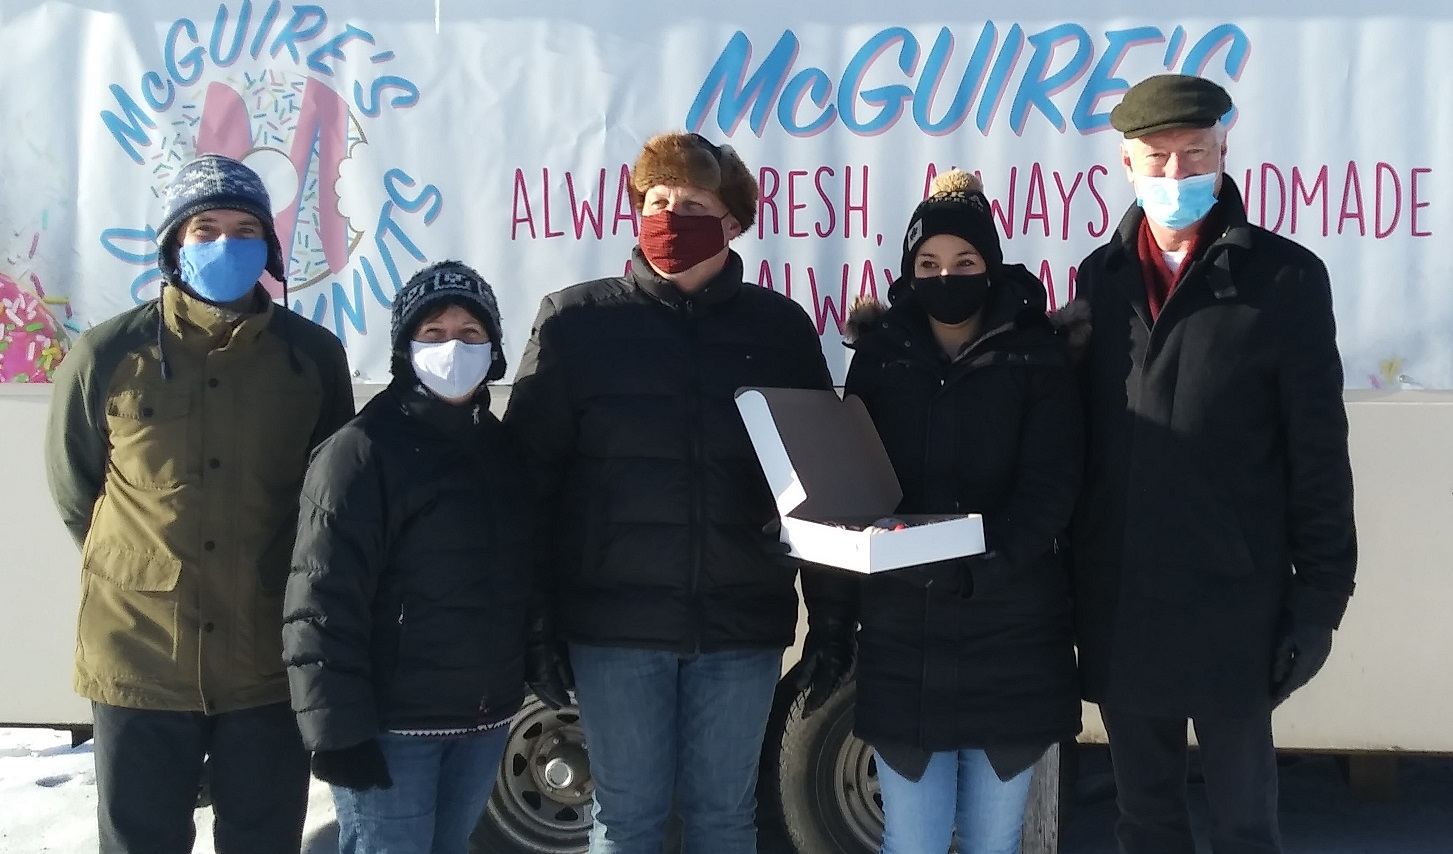 Town of Petawawa Councillors with Kristina owner of McGuire's donuts